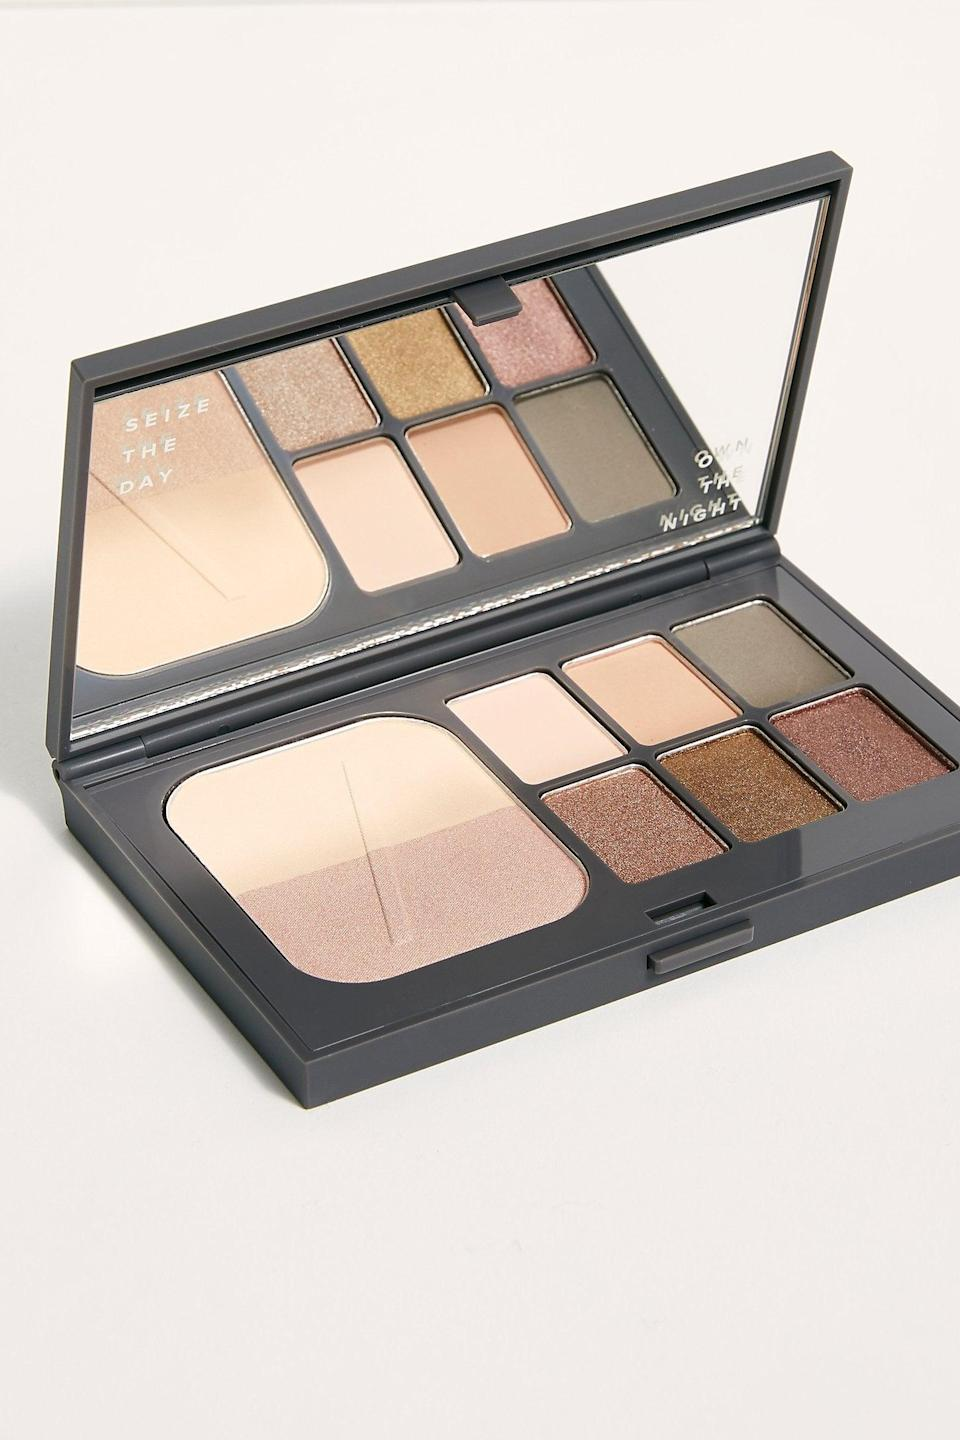 """<p>This <a href=""""https://www.popsugar.com/buy/PYT-Beauty-BS-Eyeshadow-Palette-527155?p_name=PYT%20Beauty%20No%20BS%20Eyeshadow%20Palette&retailer=freepeople.com&pid=527155&price=32&evar1=fab%3Aus&evar9=45460327&evar98=https%3A%2F%2Fwww.popsugar.com%2Ffashion%2Fphoto-gallery%2F45460327%2Fimage%2F46978005%2FPYT-Beauty-No-BS-Eyeshadow-Palette&list1=shopping%2Cgifts%2Cfree%20people%2Choliday%2Cgift%20guide%2Cgifts%20for%20women&prop13=api&pdata=1"""" class=""""link rapid-noclick-resp"""" rel=""""nofollow noopener"""" target=""""_blank"""" data-ylk=""""slk:PYT Beauty No BS Eyeshadow Palette"""">PYT Beauty No BS Eyeshadow Palette</a> ($32) is perfect to carry in their purse.</p>"""